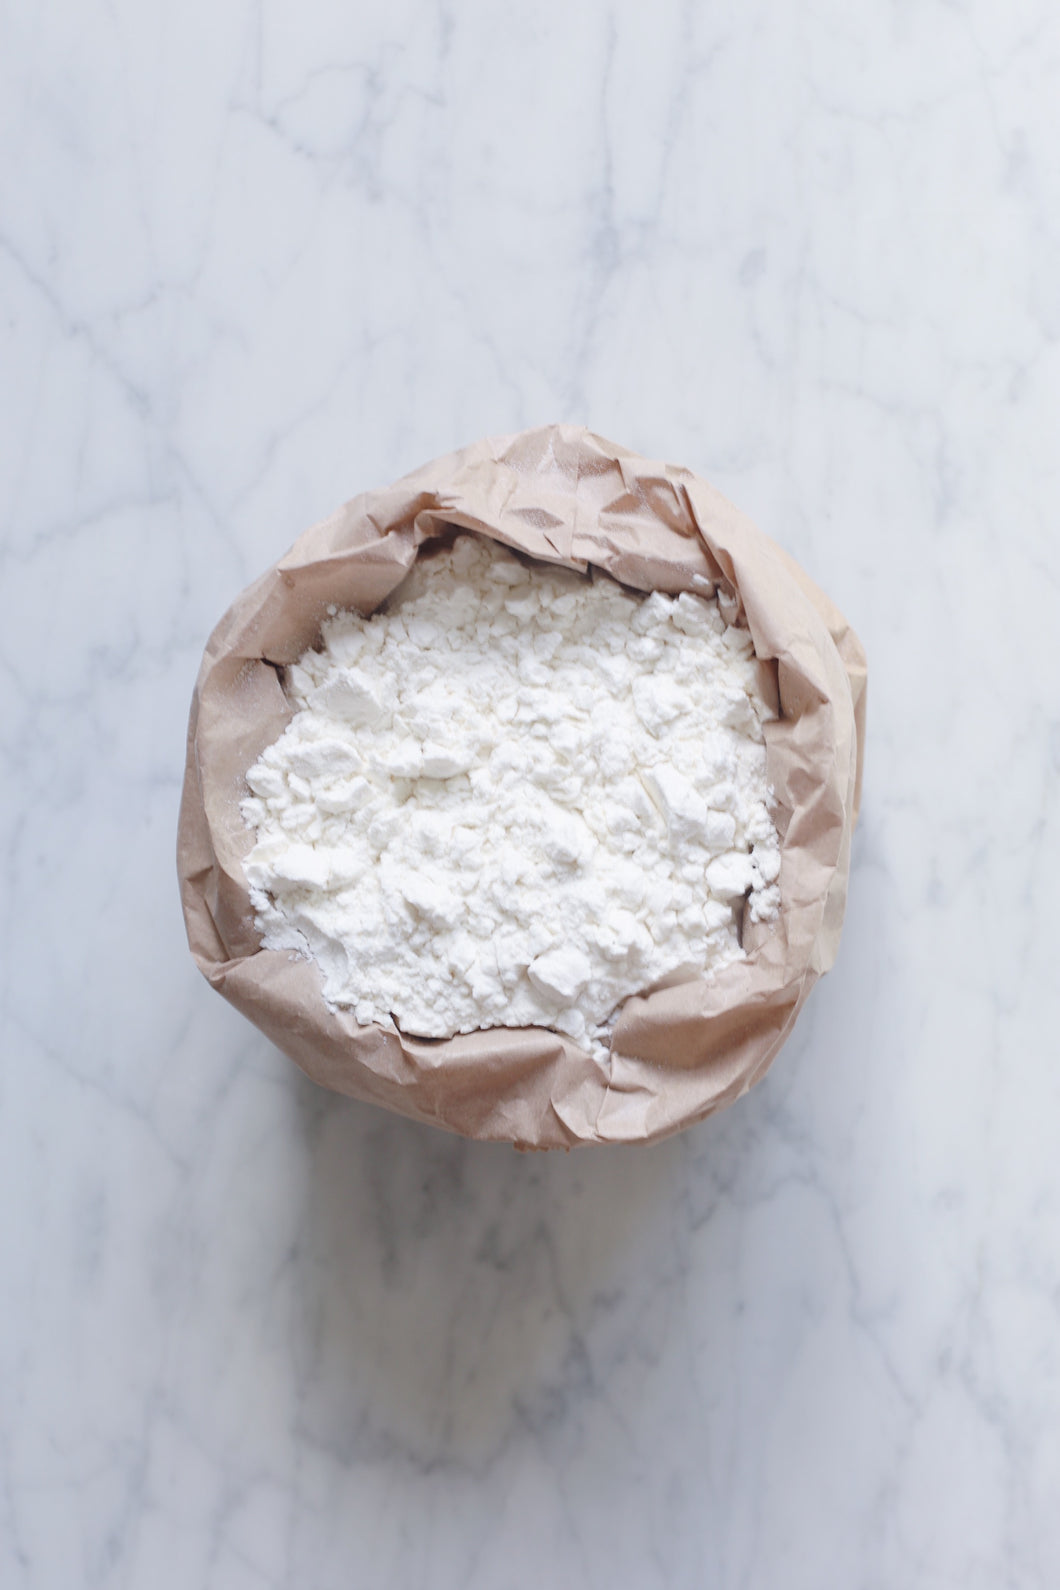 Biodynamic Self Raising Flour